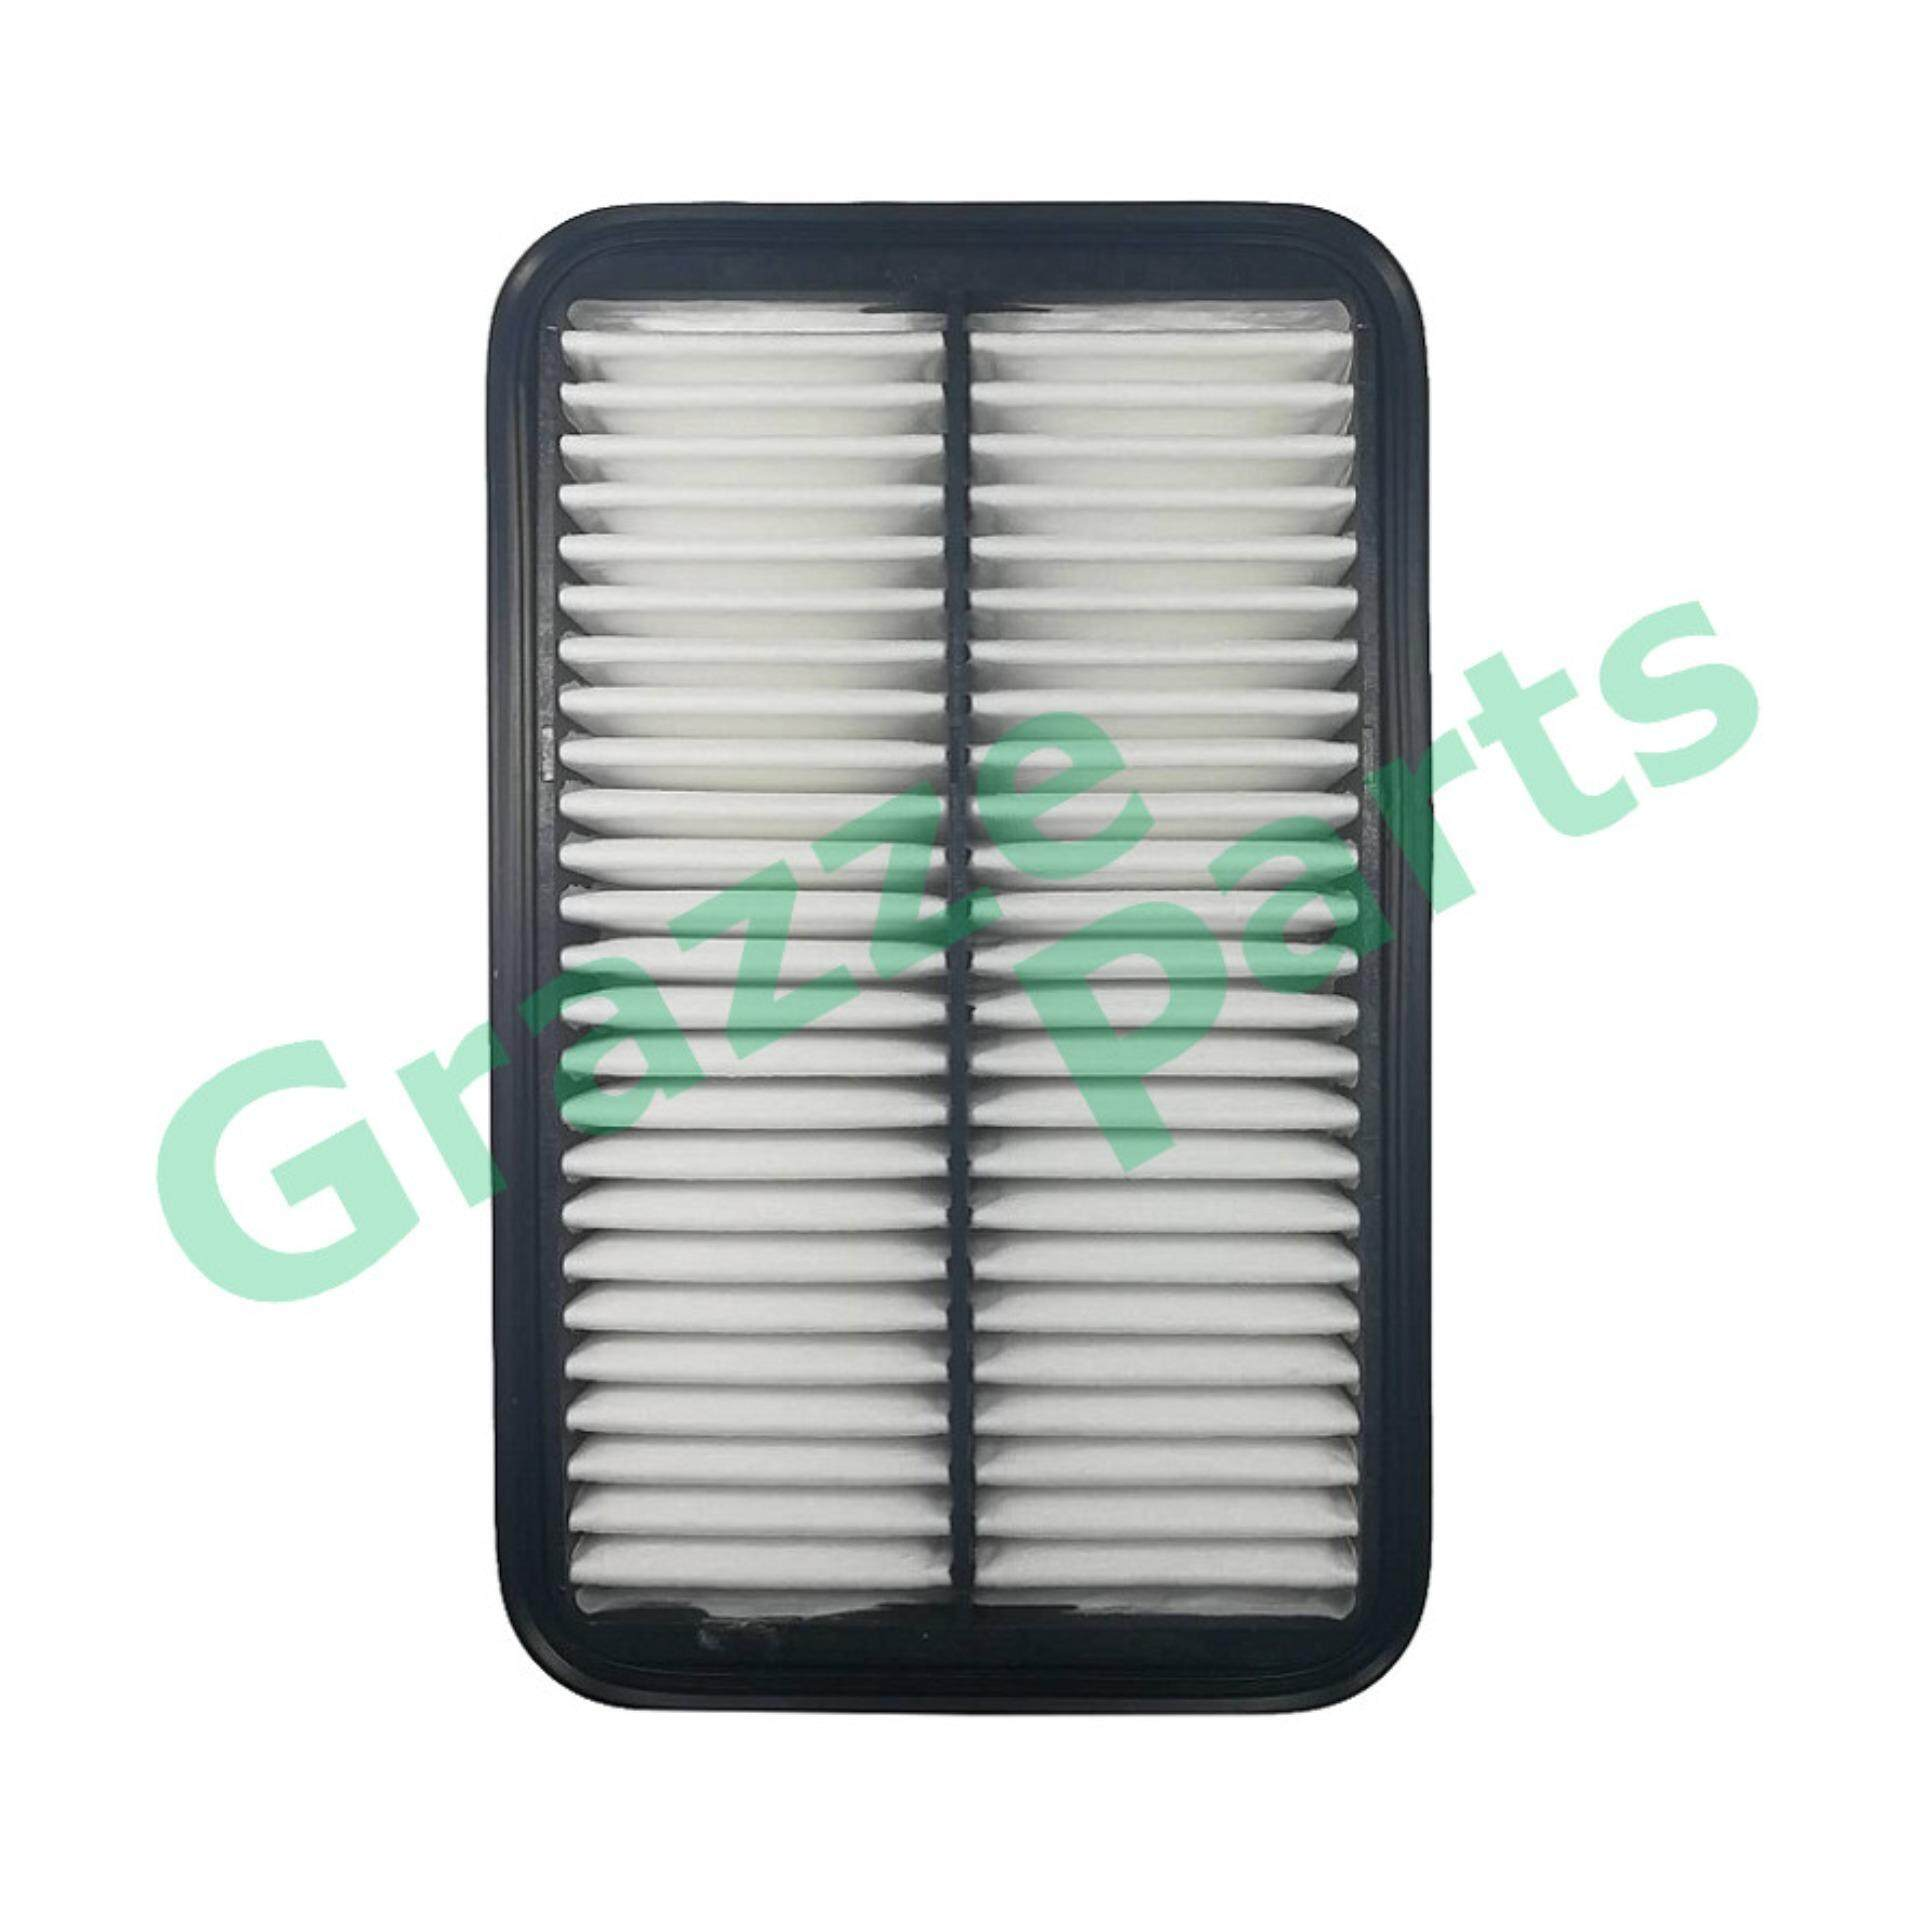 Air Filter for Perodua Kembara 1.3, Toyota Avanza 1.3